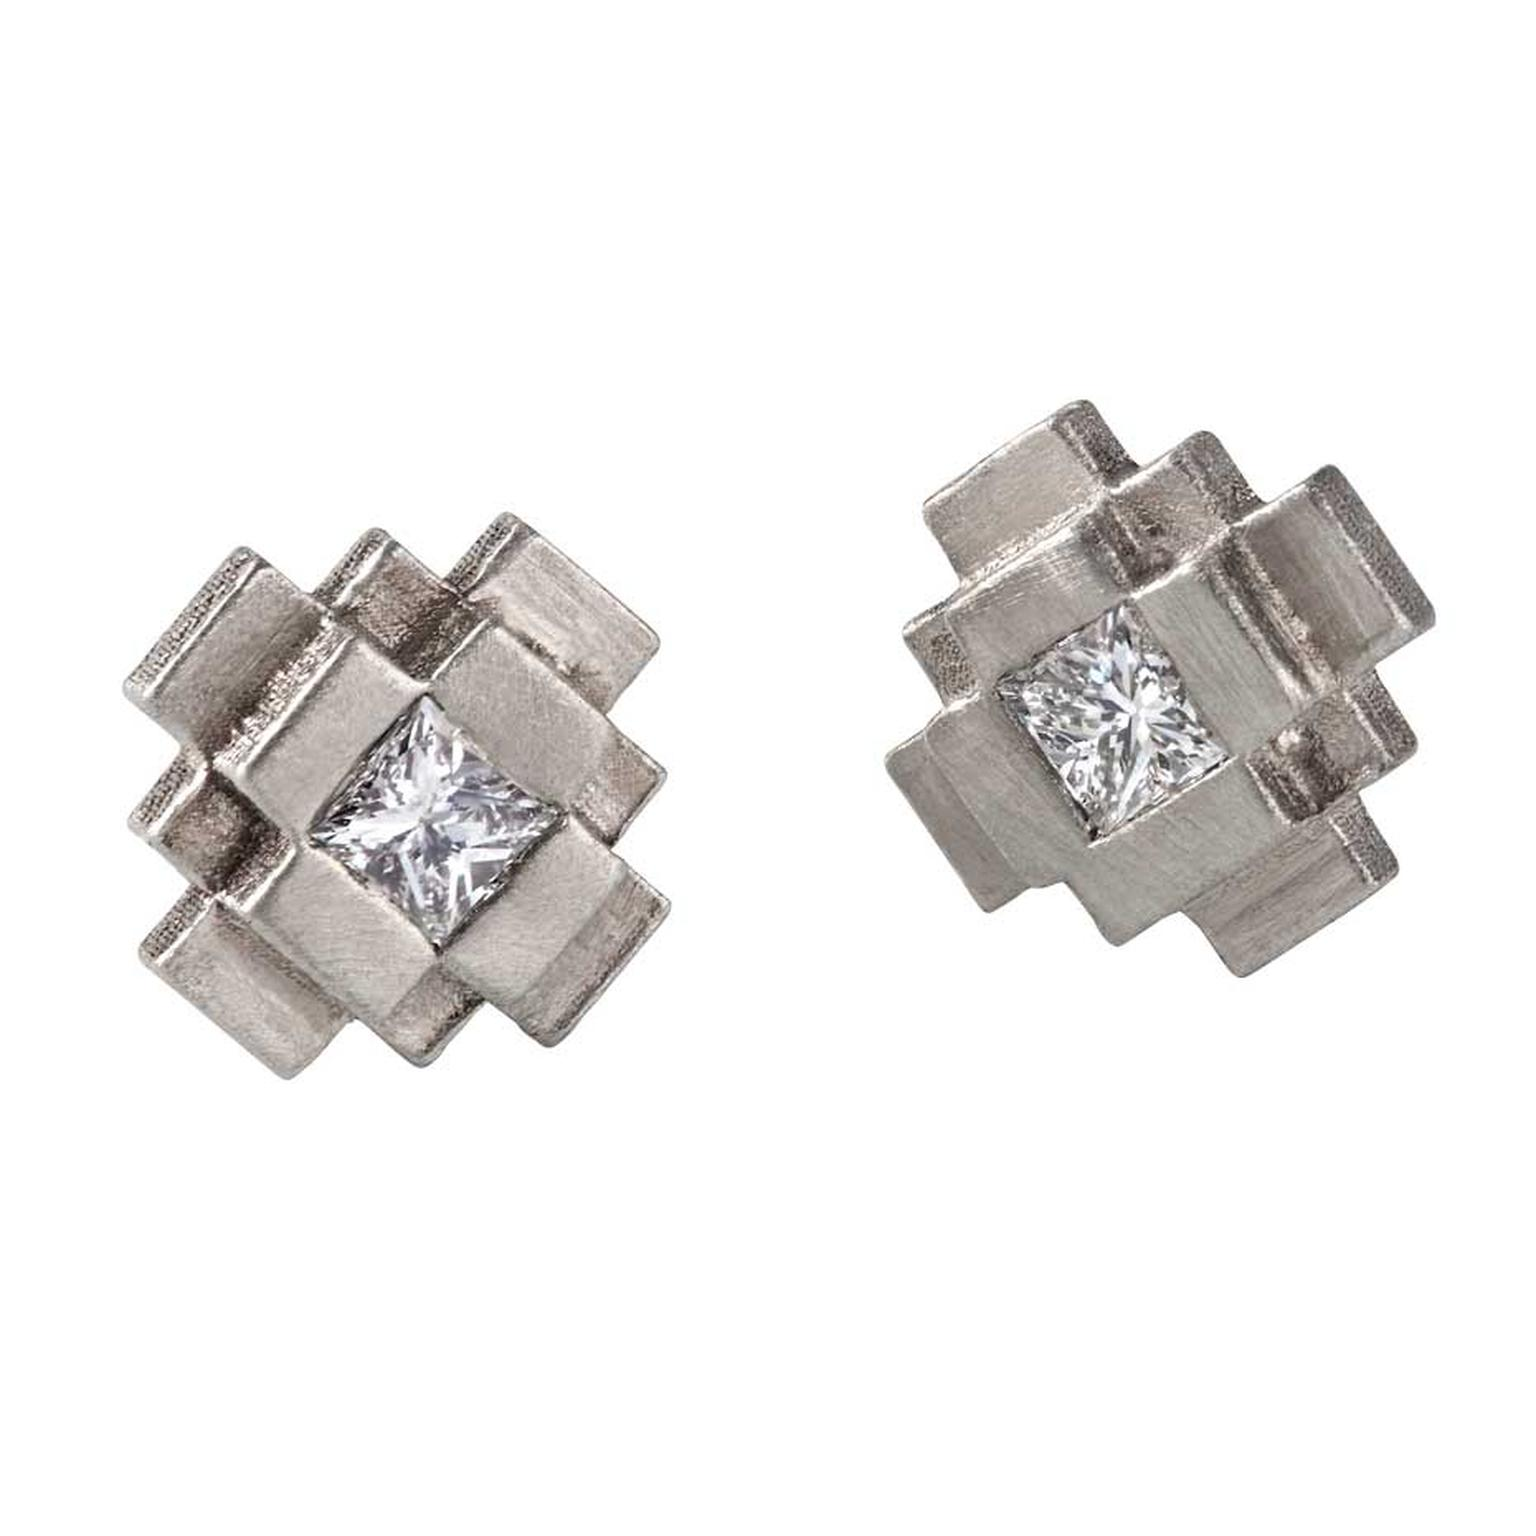 Baptiste Monvoisin Pixel earrings with princess-cut diamonds in sandblasted white gold.